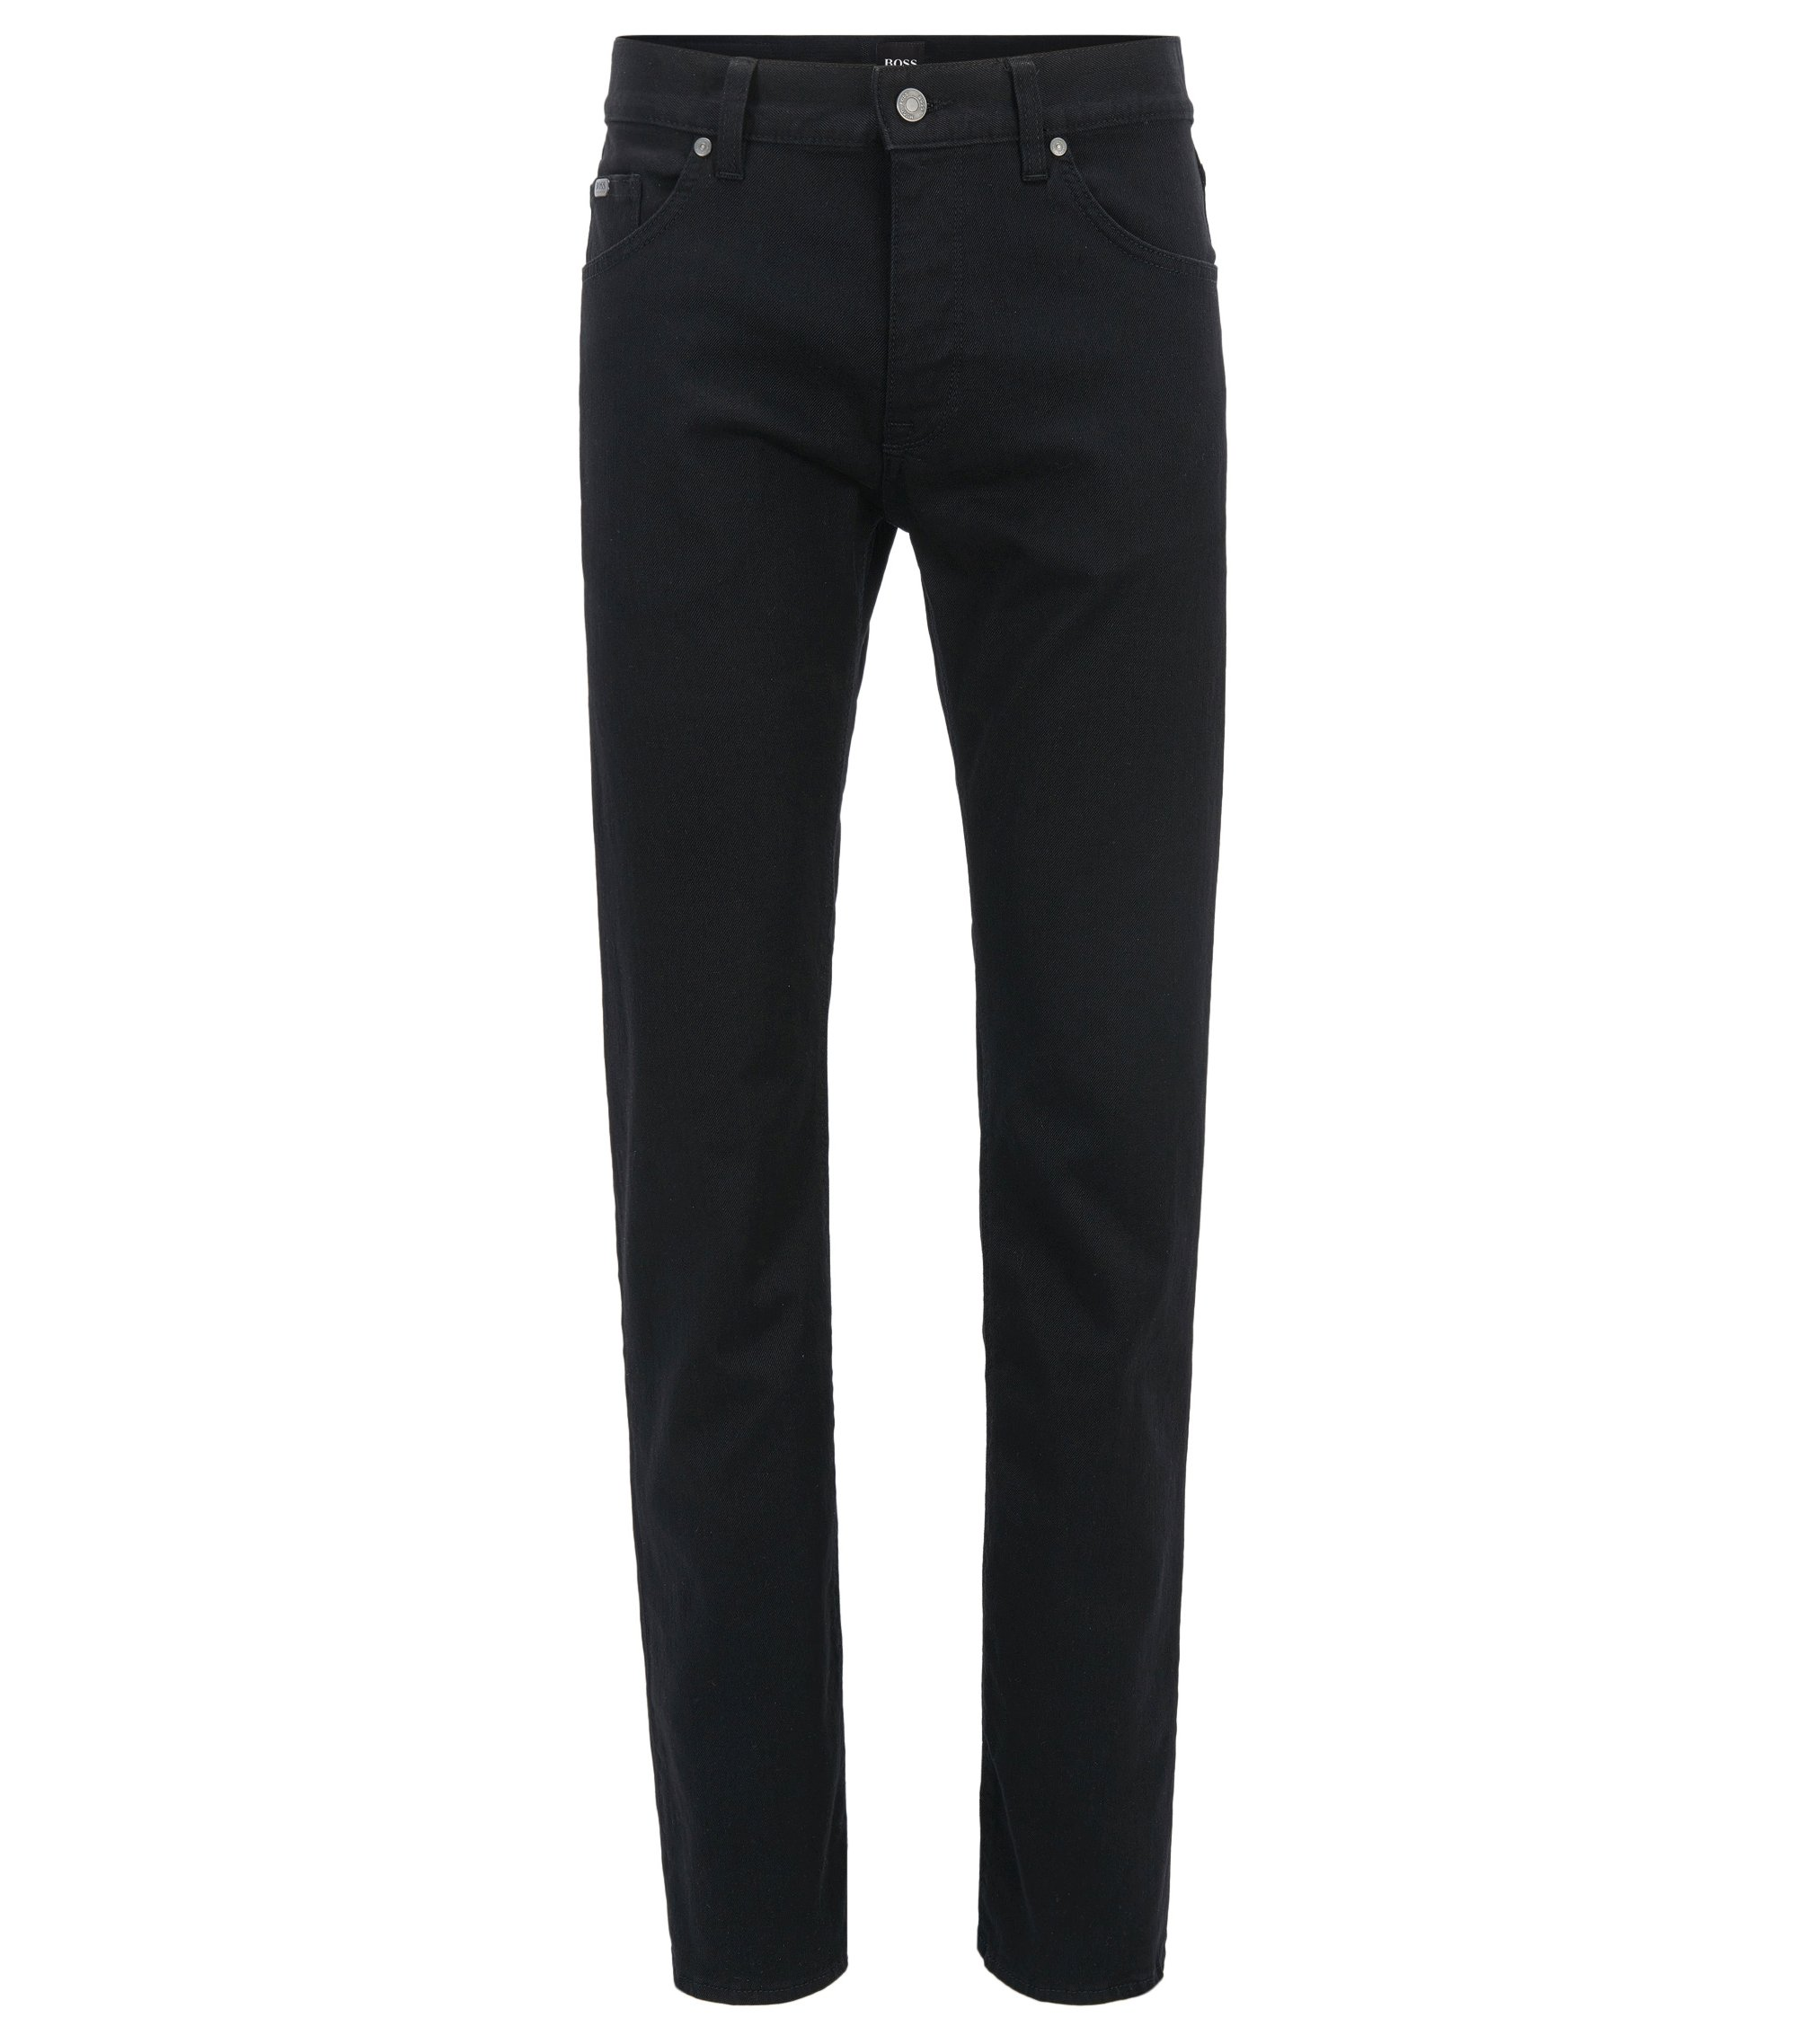 Jeans Regular Fit en coton mélangé extensible : « C-Maine1 », Noir